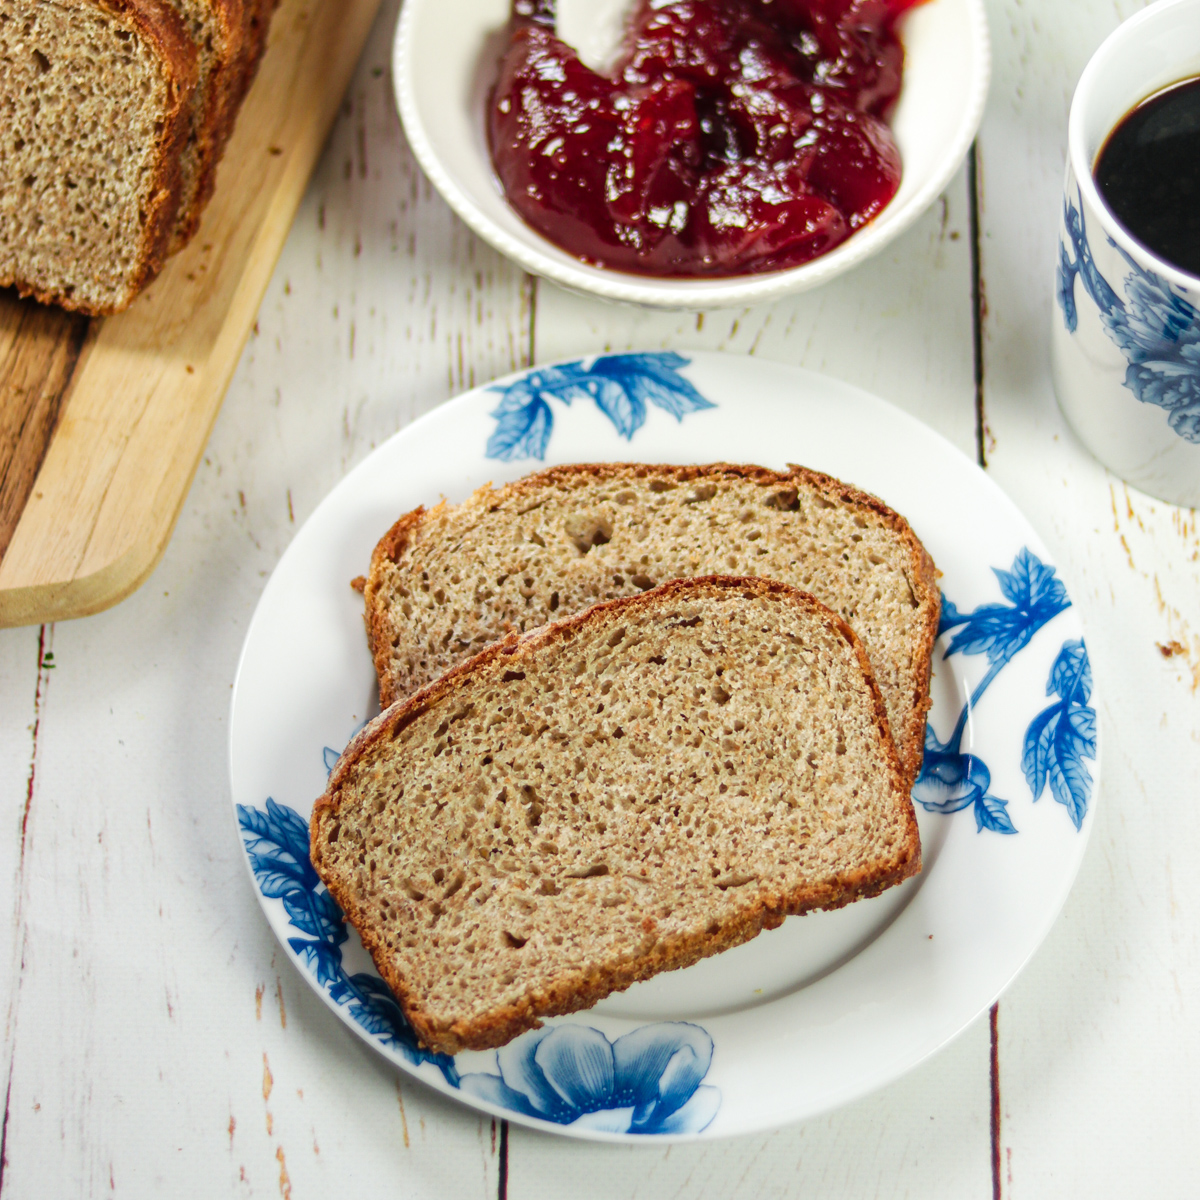 plate of No Knead Whole Wheat Bread with jam and coffee